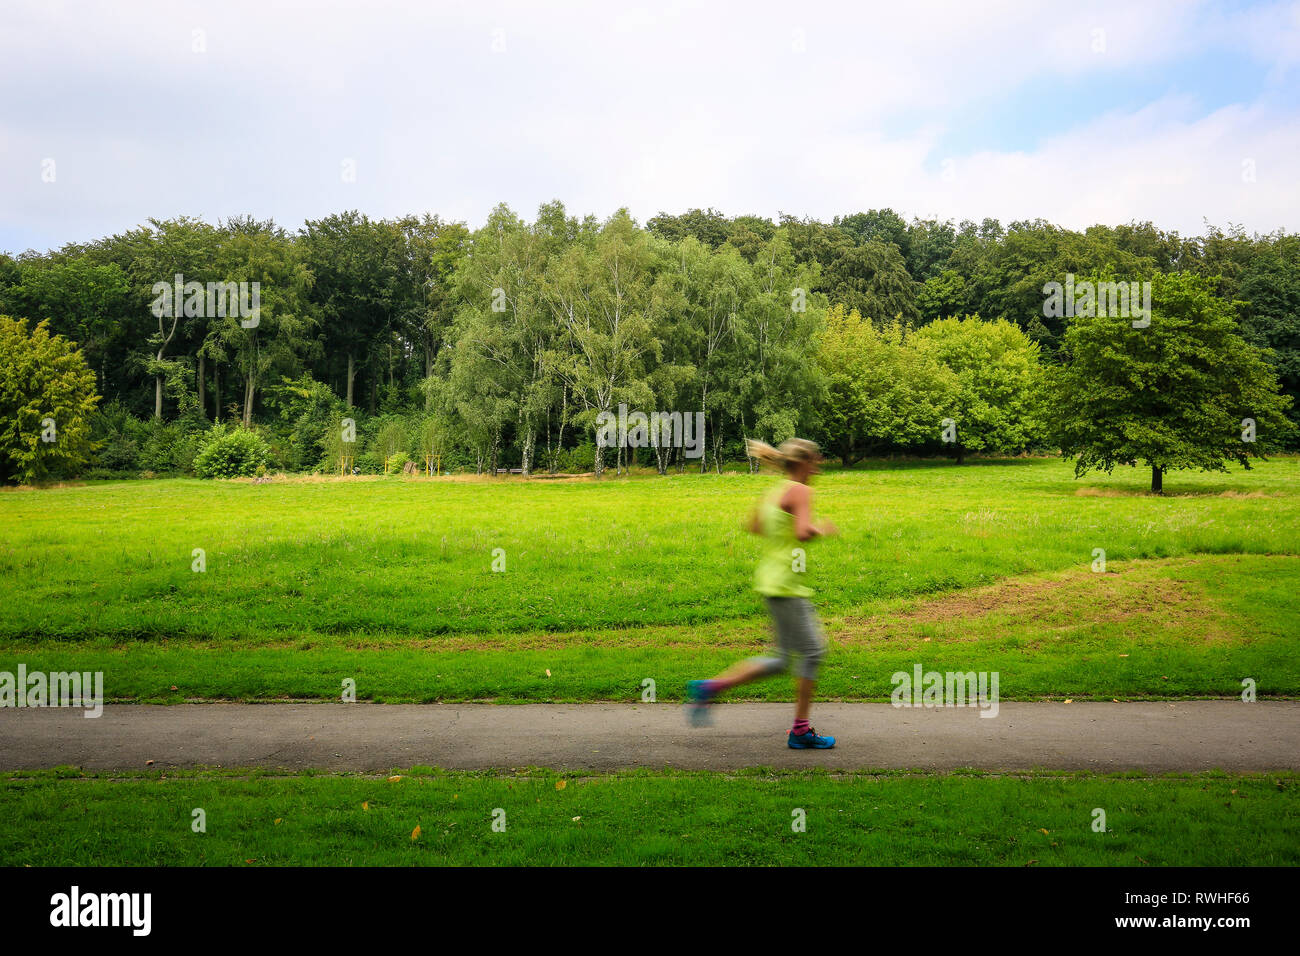 Essen, North Rhine-Westphalia, Ruhr area, Germany - The Hallopark between Stoppenberg and Schonnebeck is one of the oldest green parks in Essen, Jogge - Stock Image